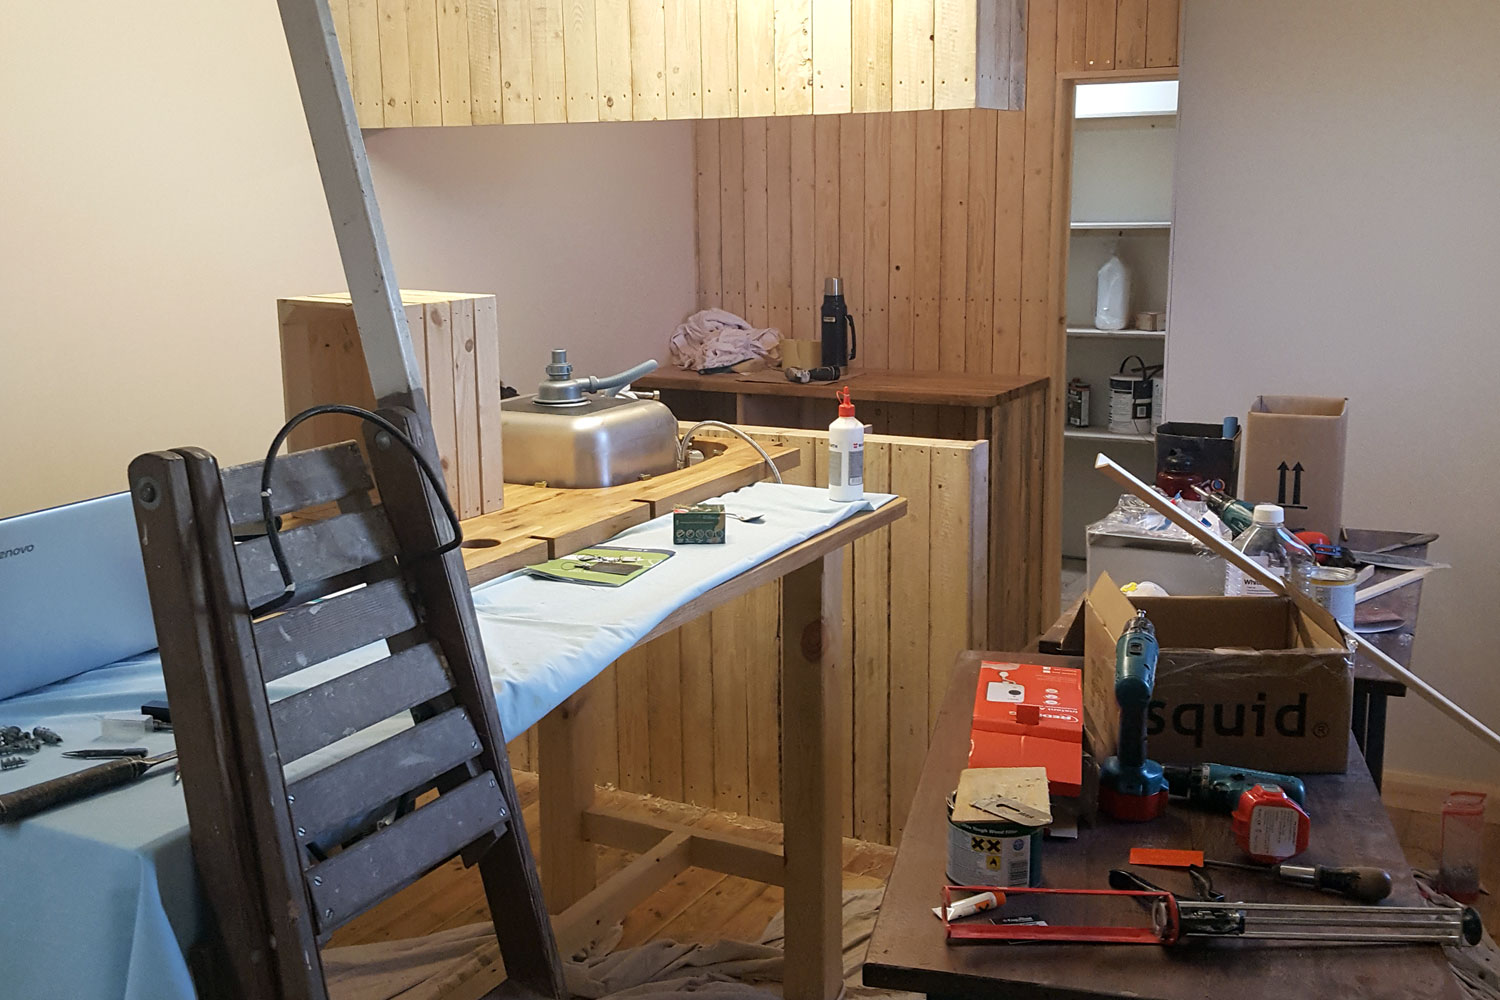 The Tasting Room beginning to take shape.